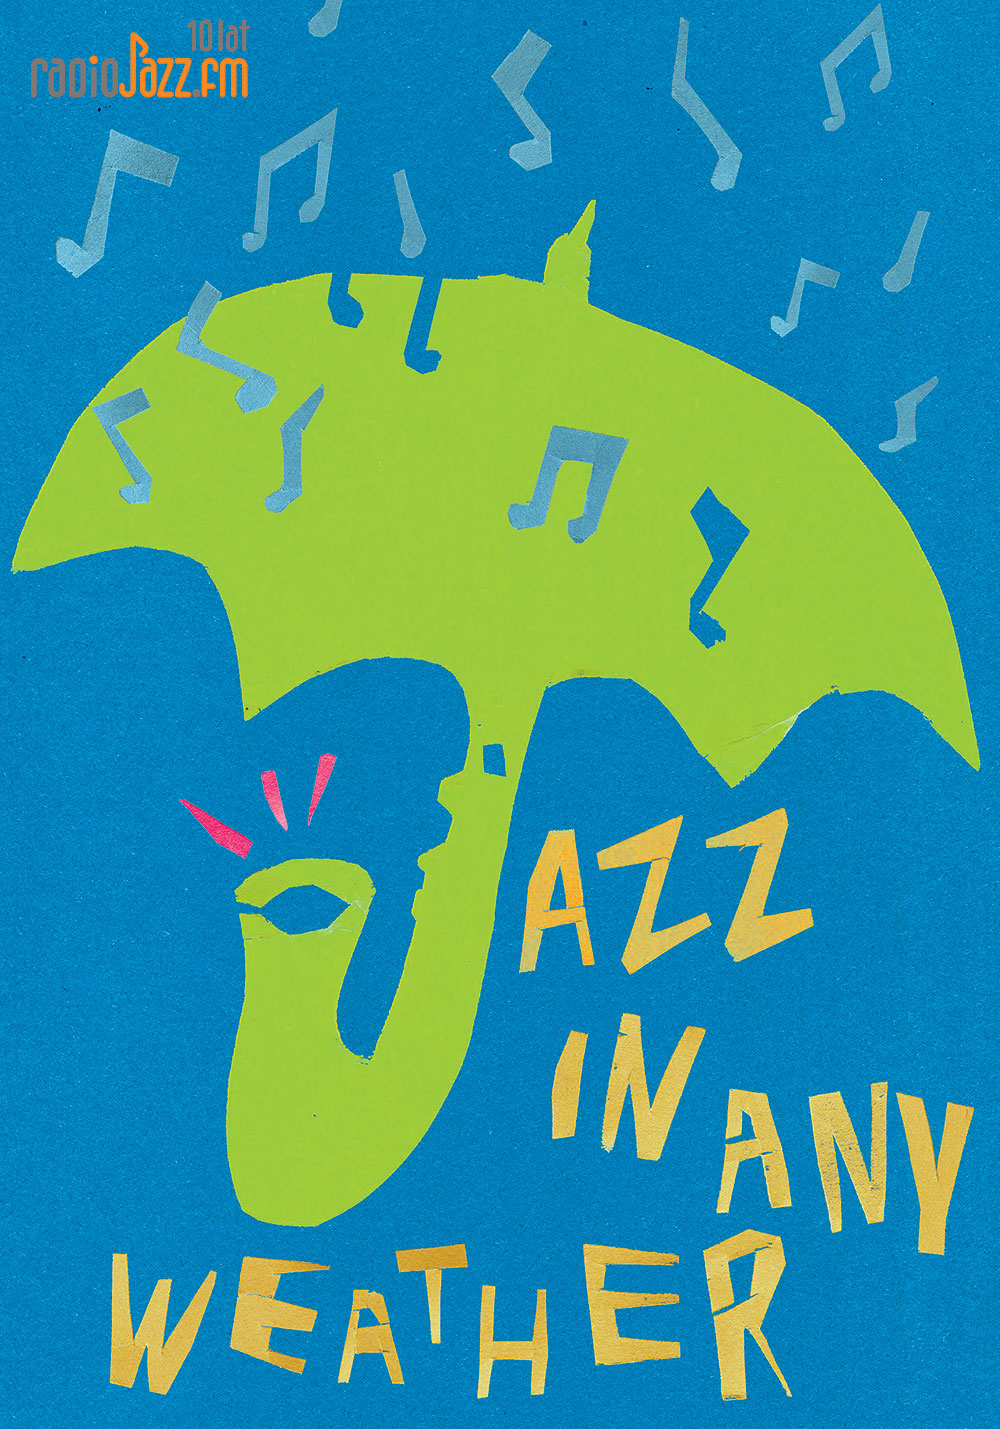 Stanislaw Gajewski Poland jazz in any weather